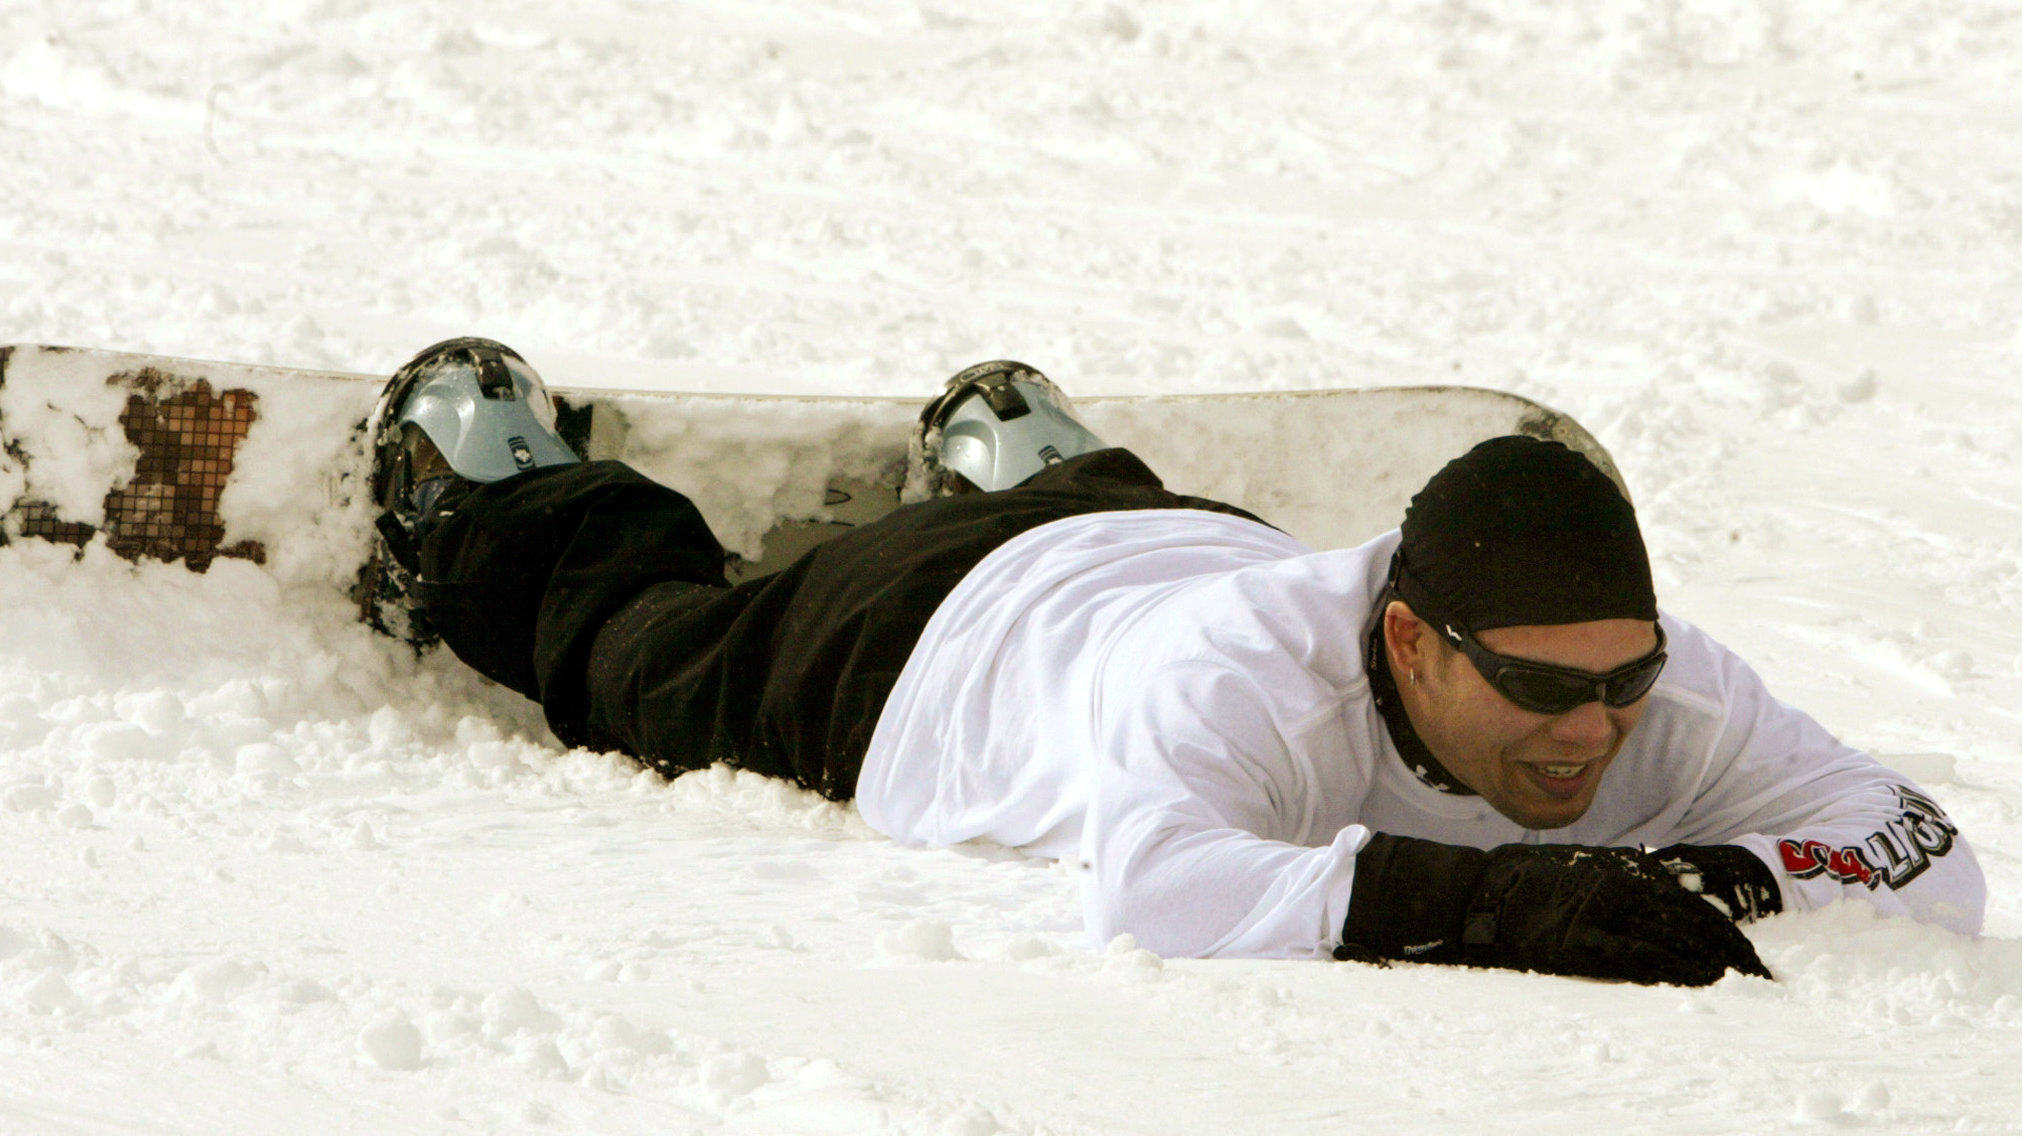 snowboarder face down in snow